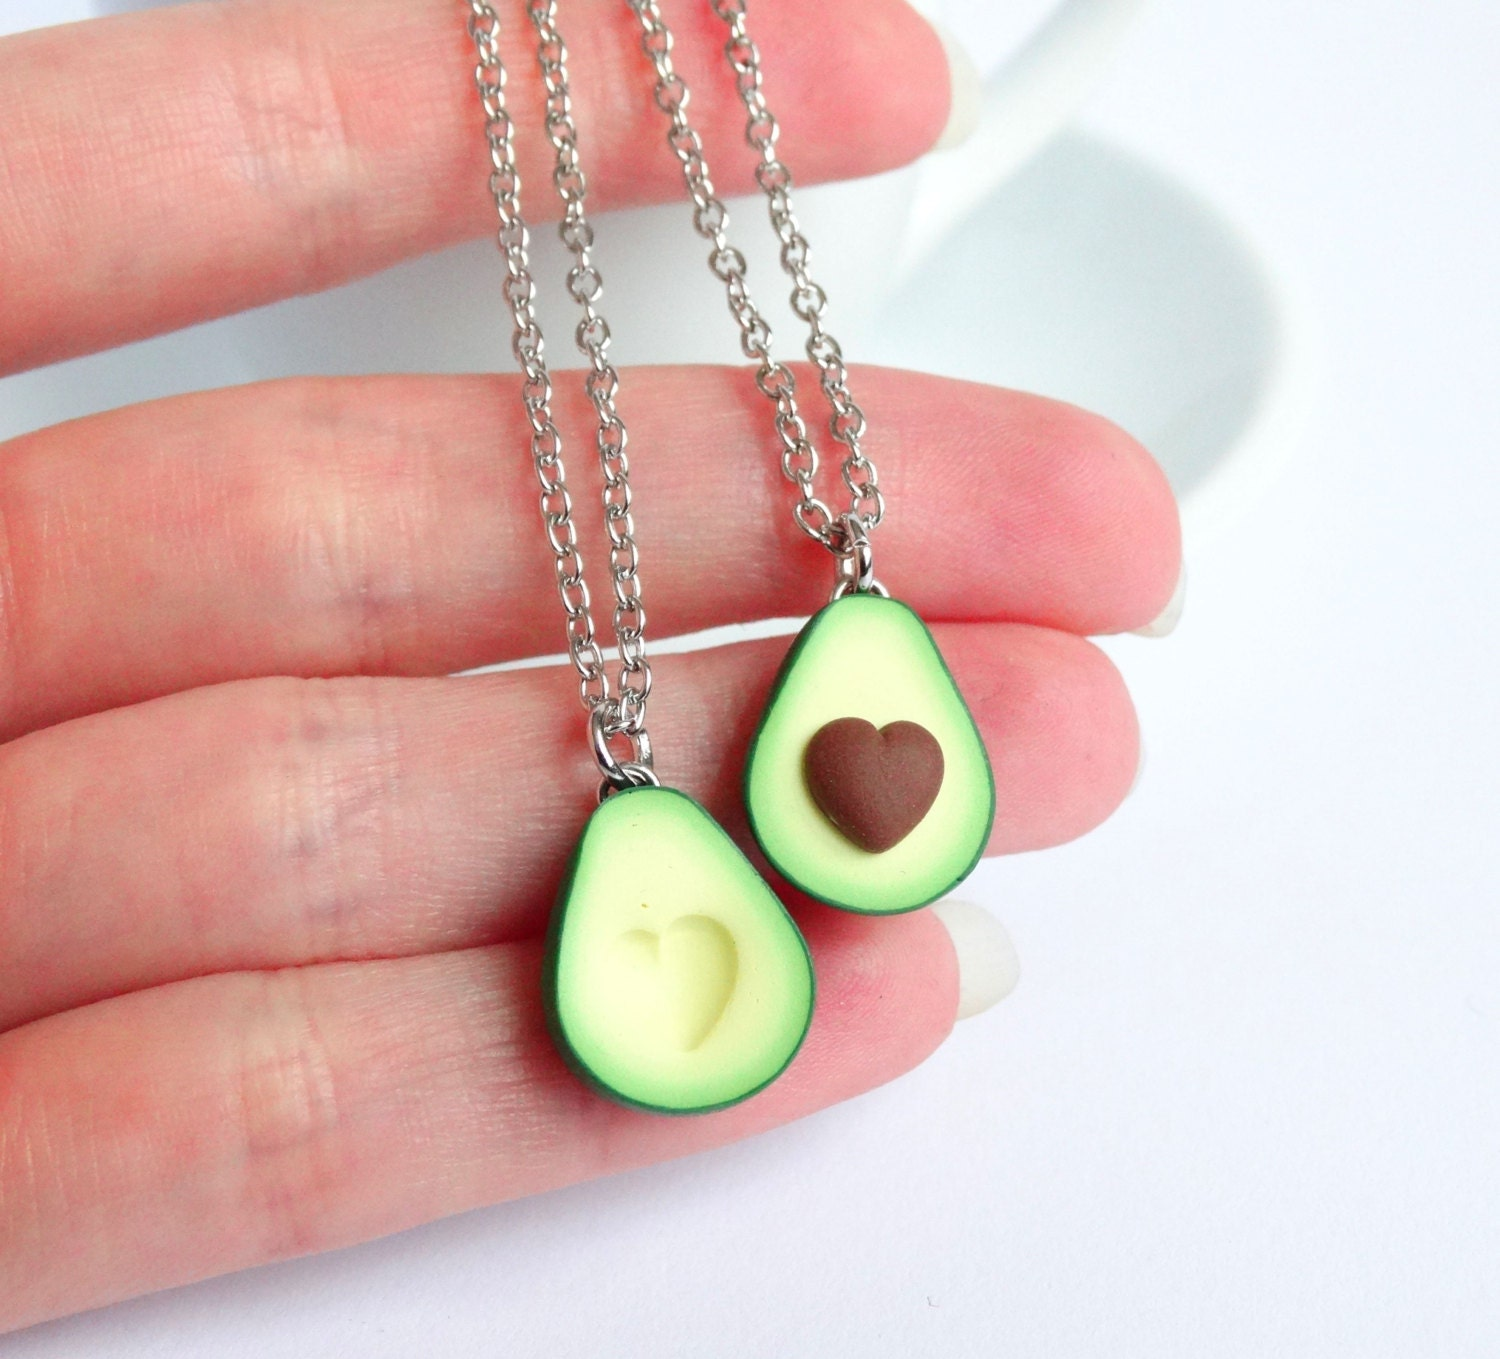 Personalized and custom jewelry   Etsy